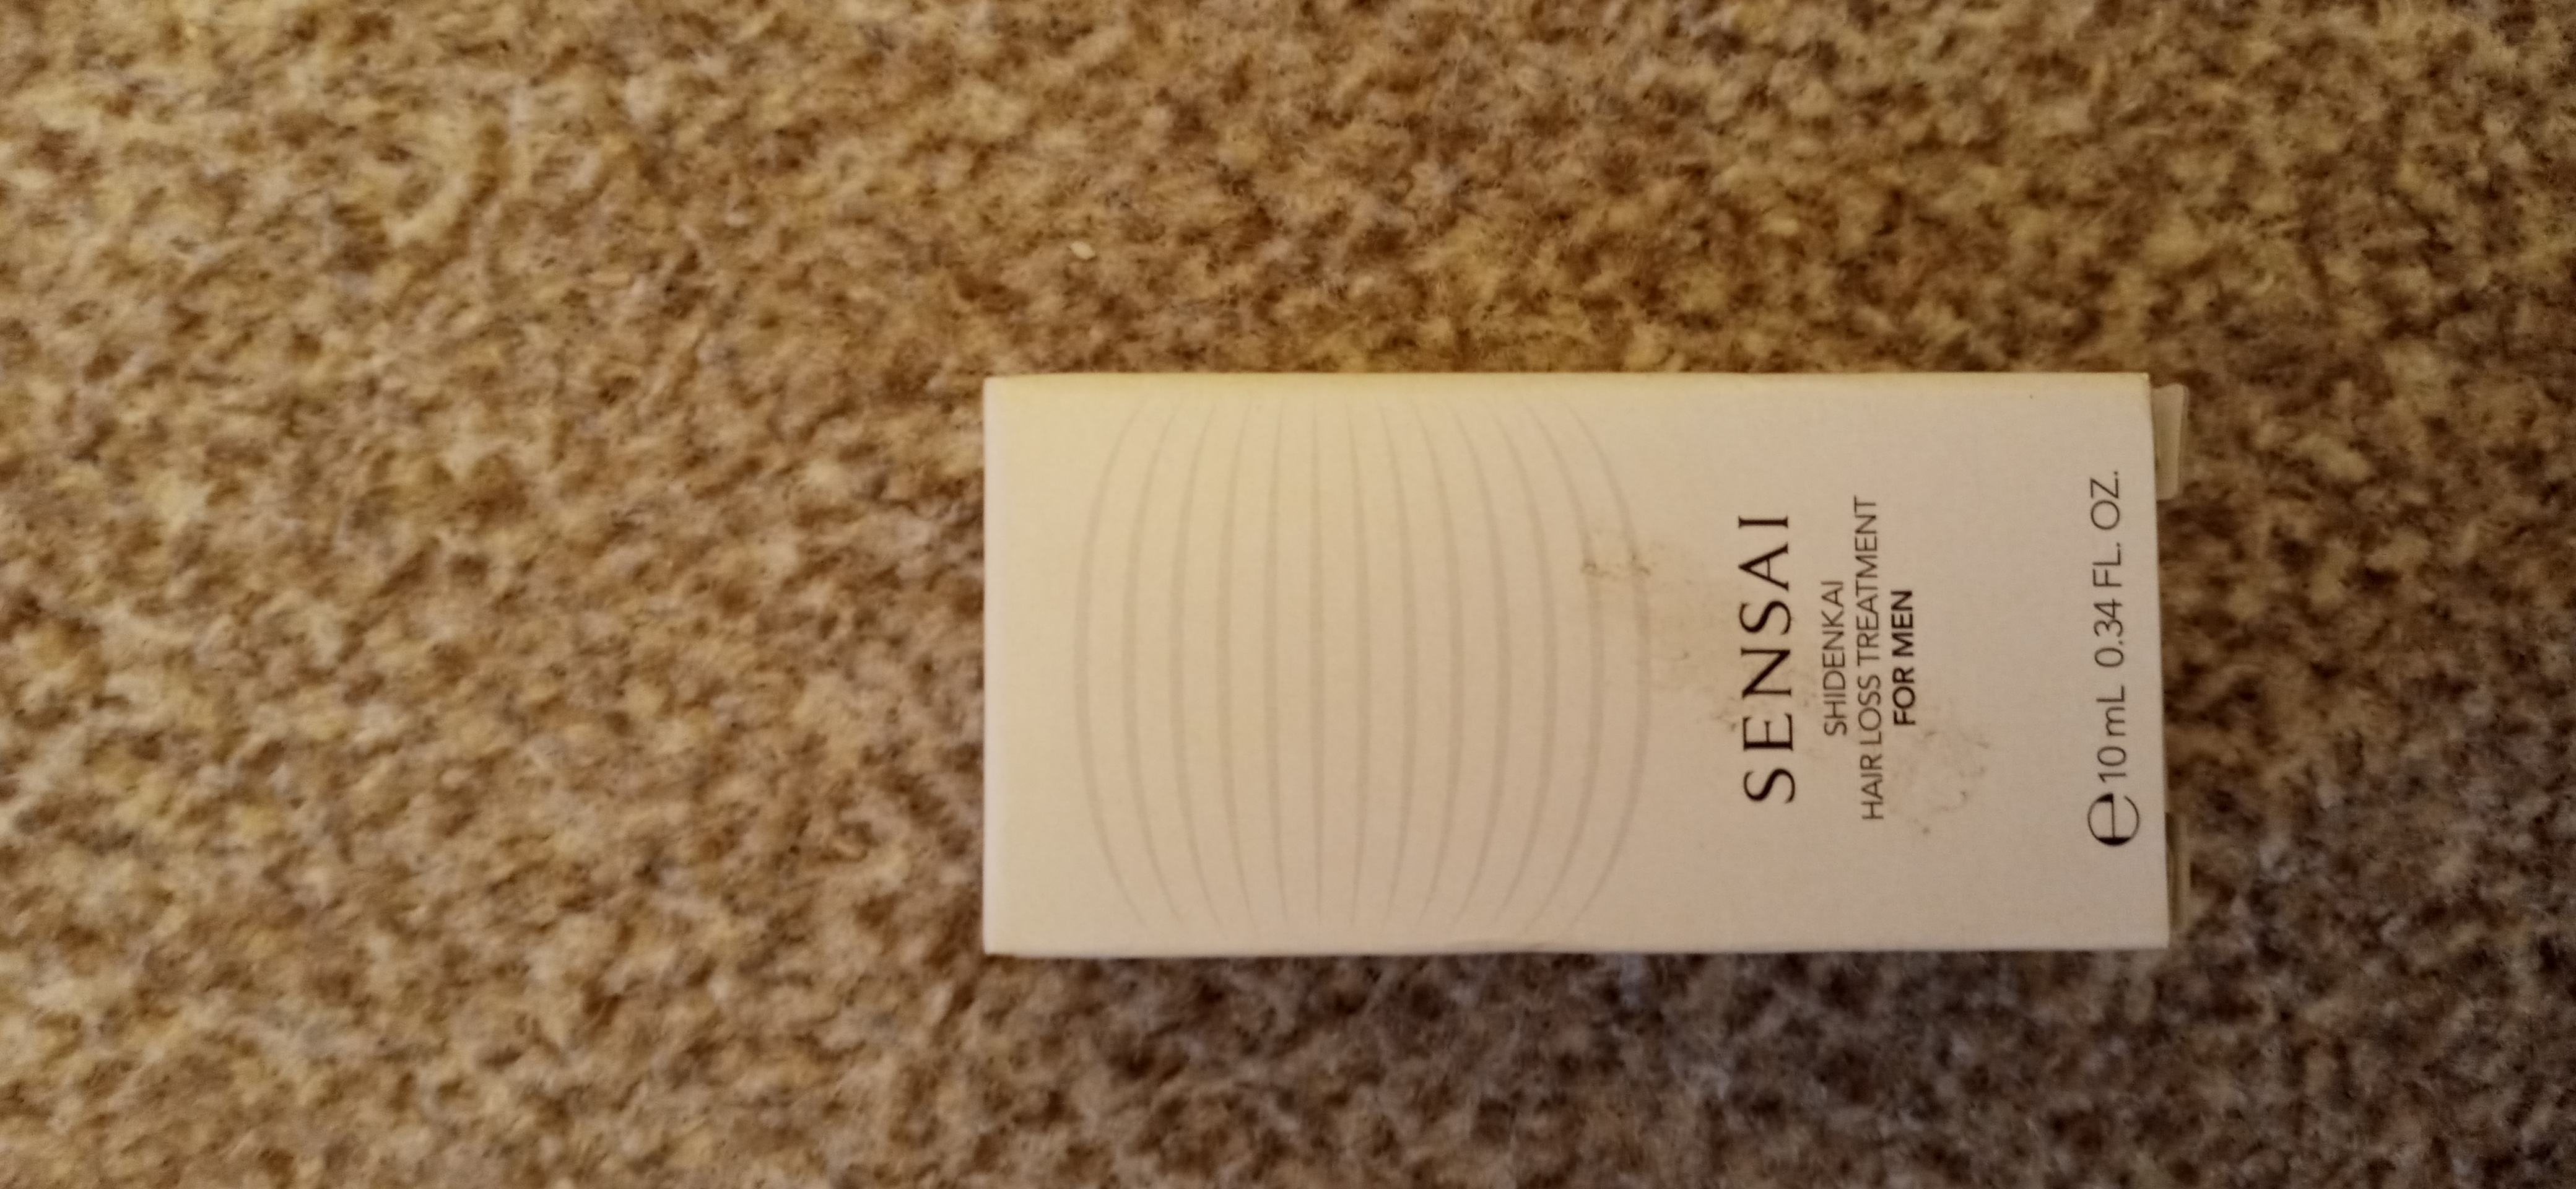 Sensai Hairloss Treatment 10 ml tauschen